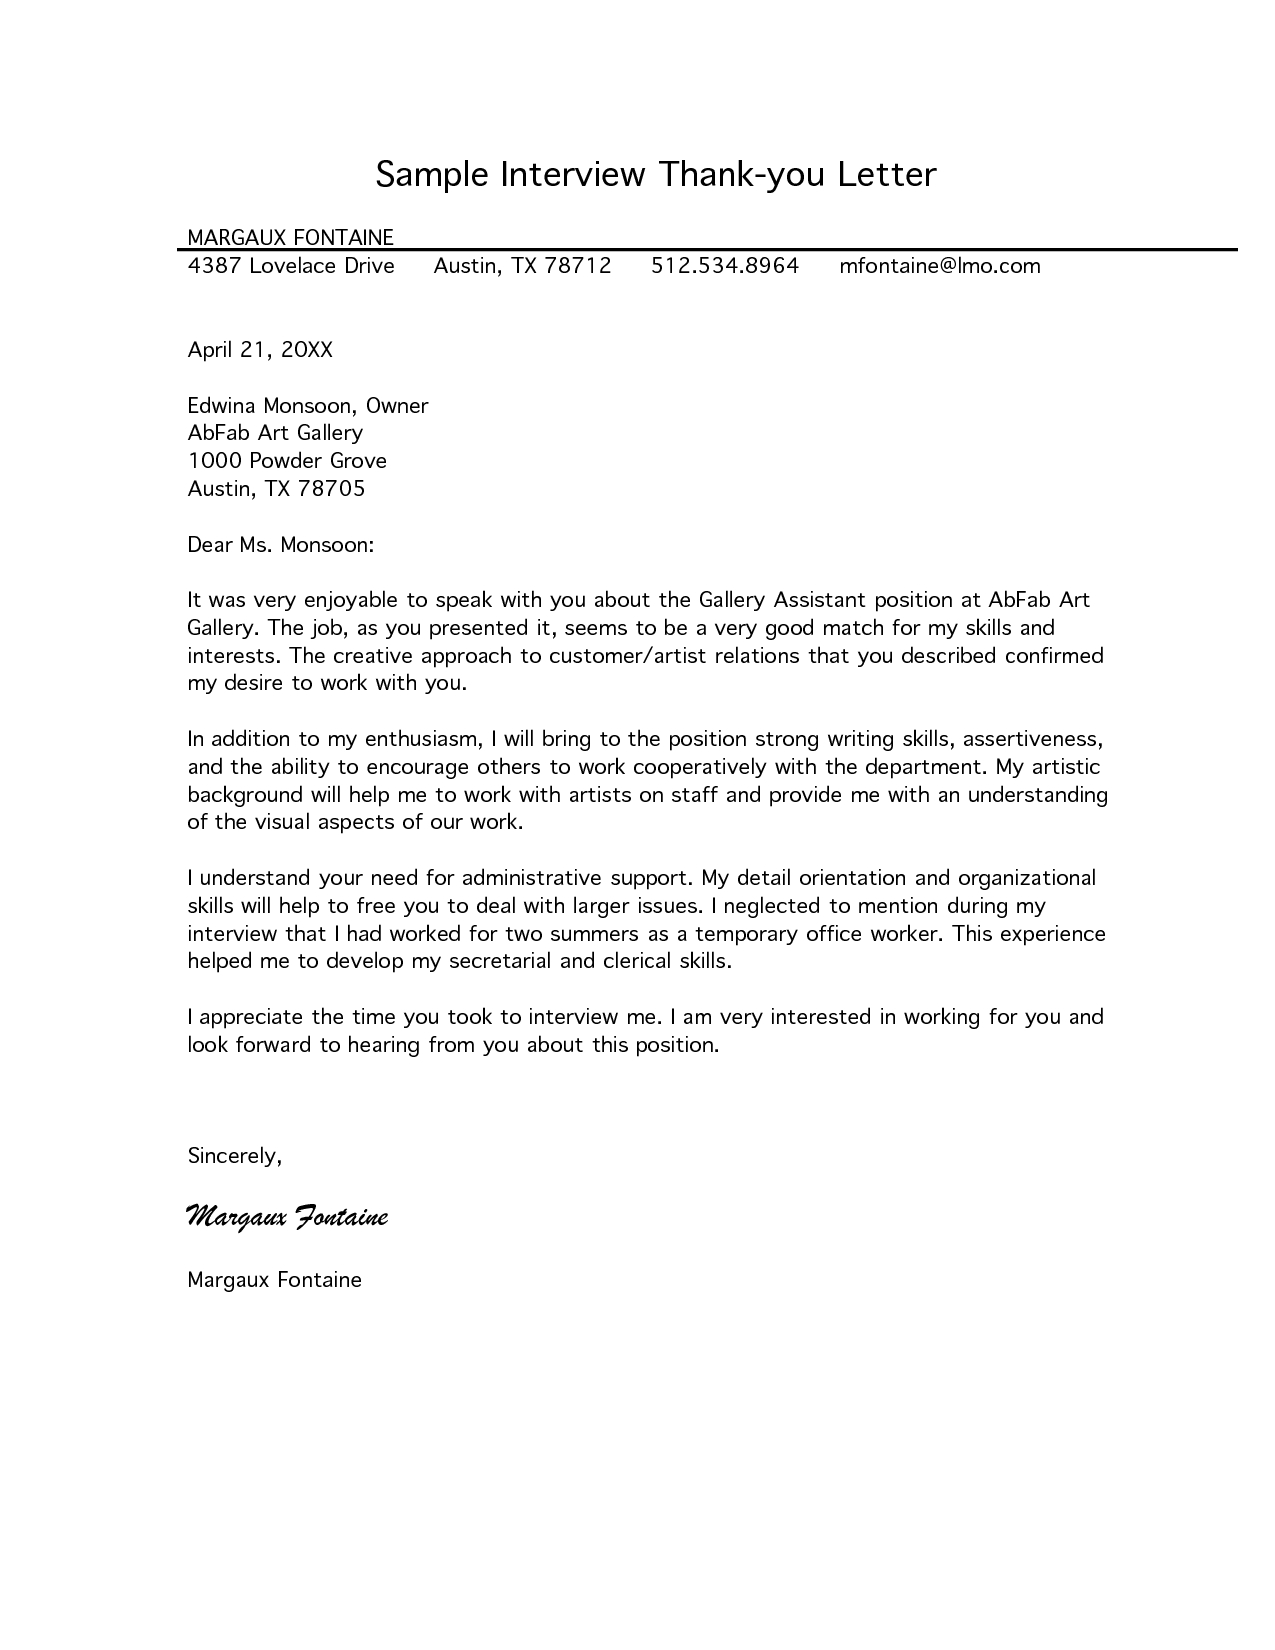 Employment Thank You Letter Template - Free Letter Of Interest Templates